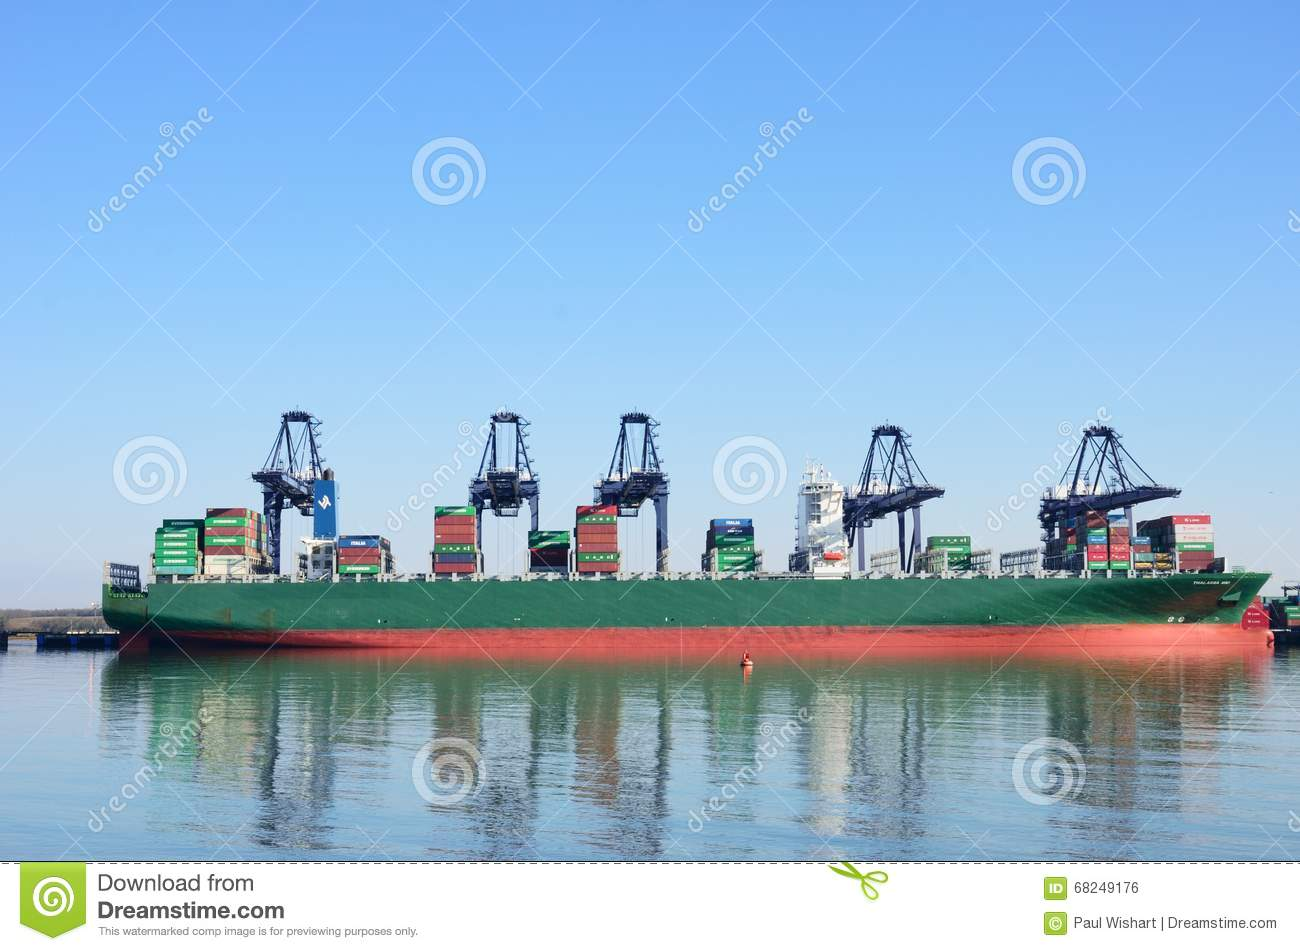 Large Container Ship in port with cranes